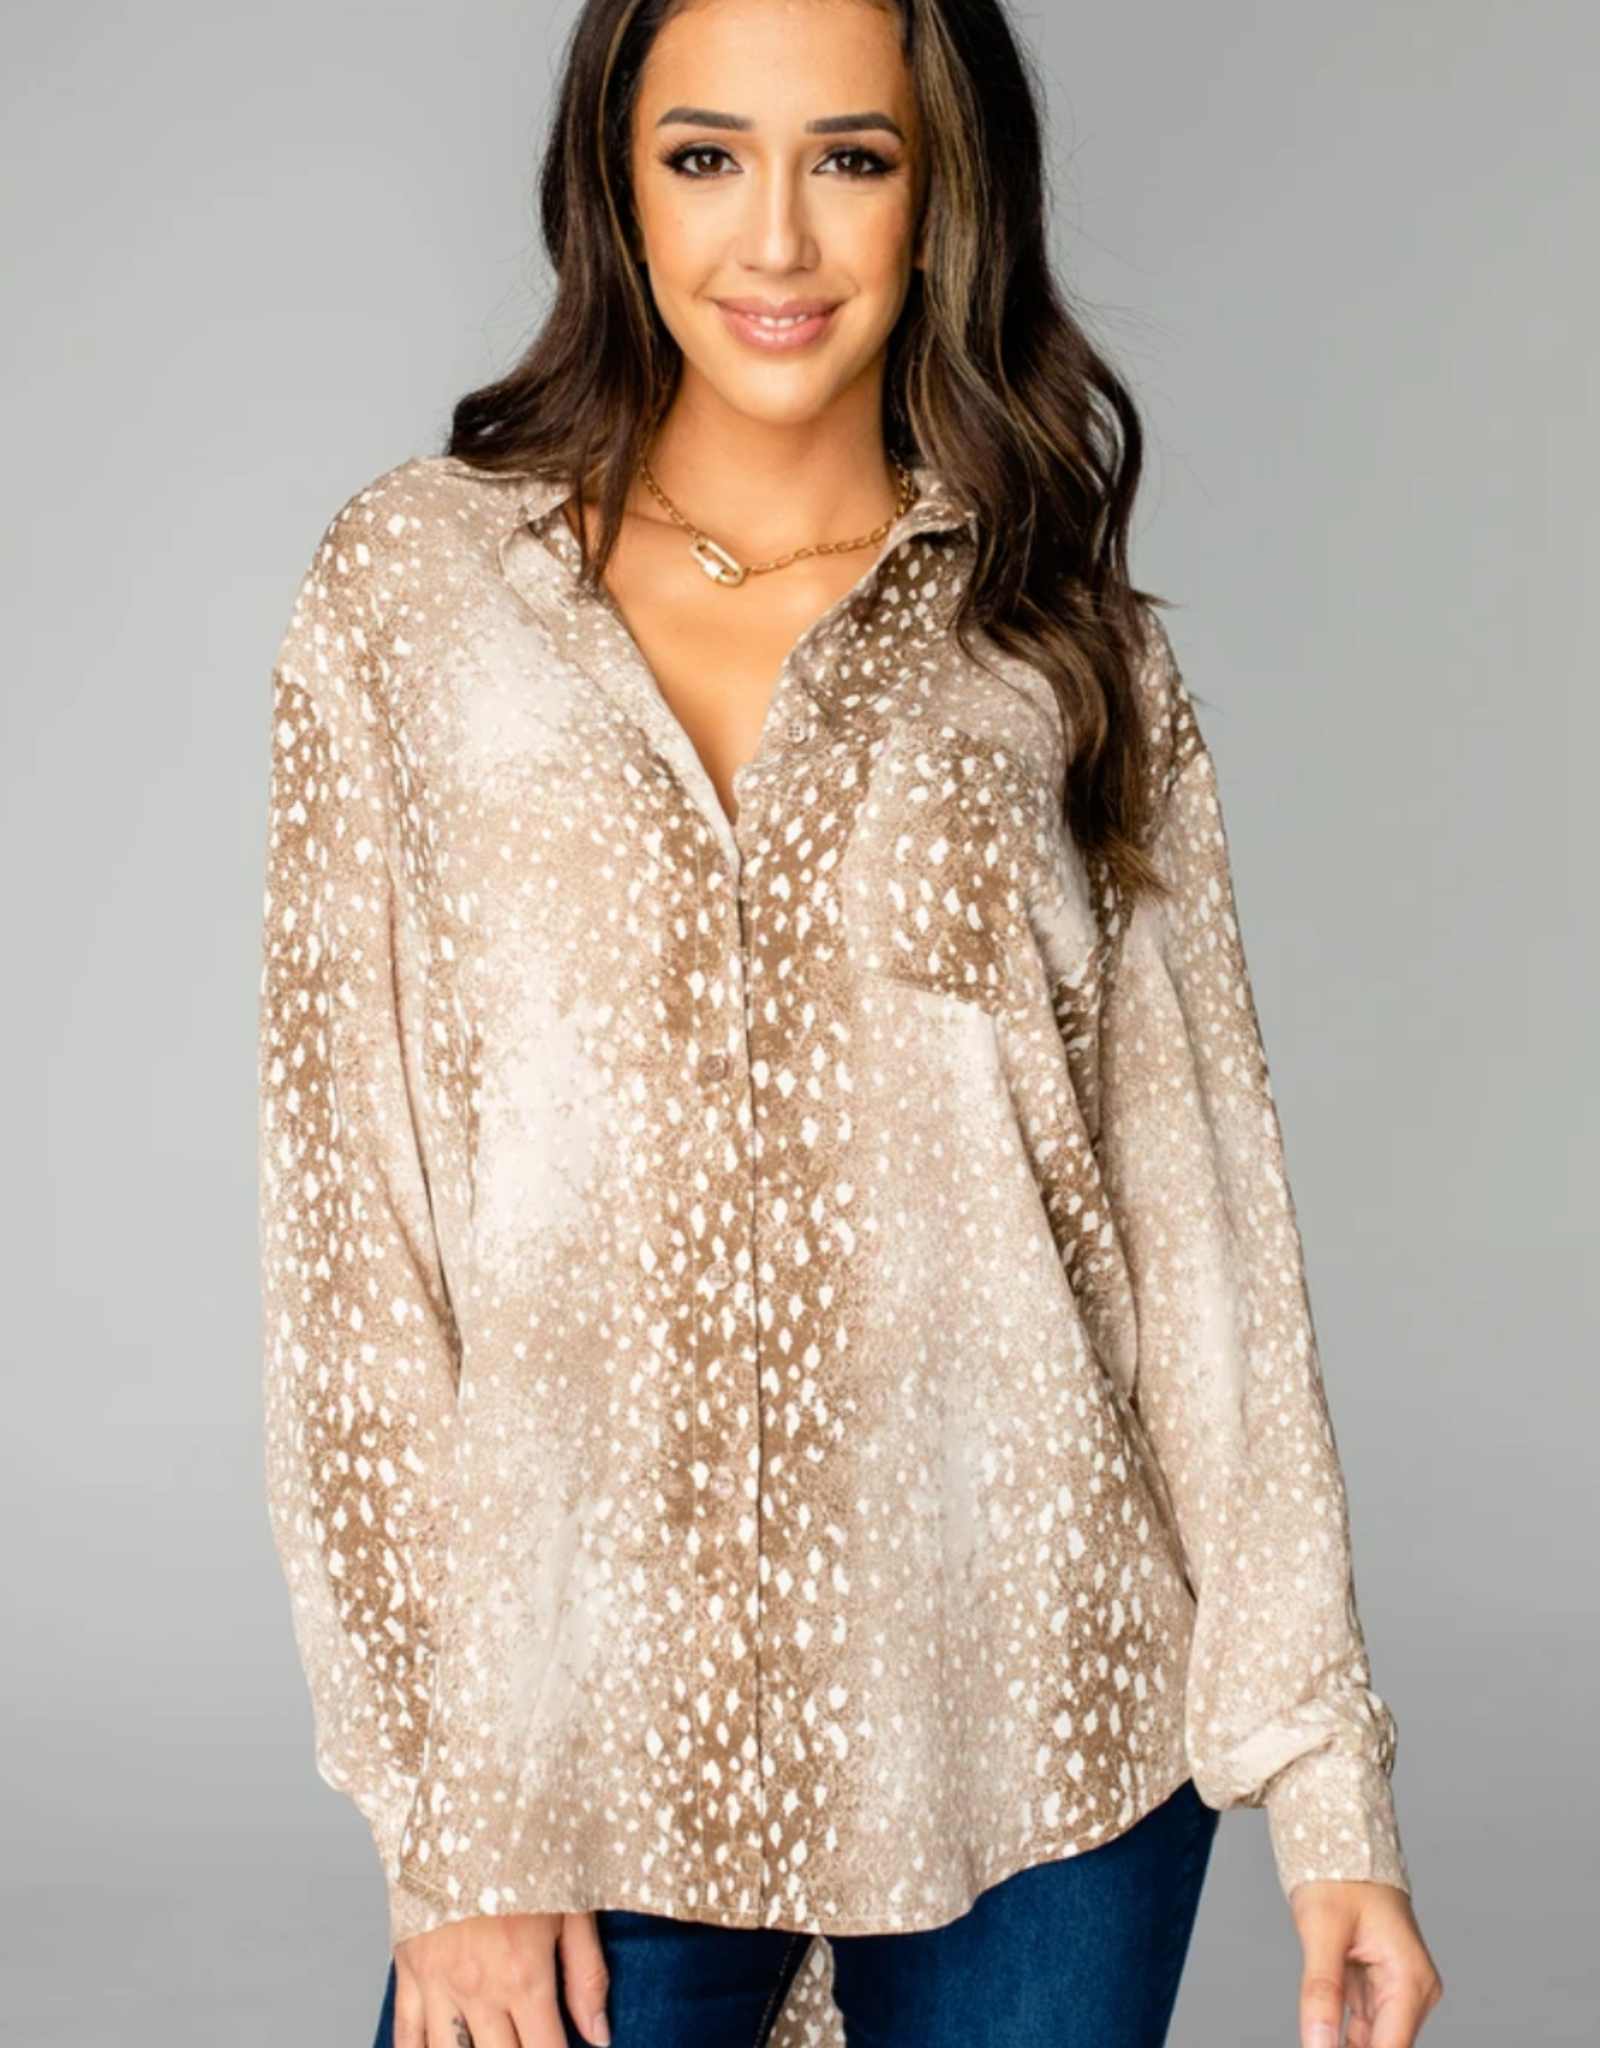 Buddy Love Portia Loose Button Up Top